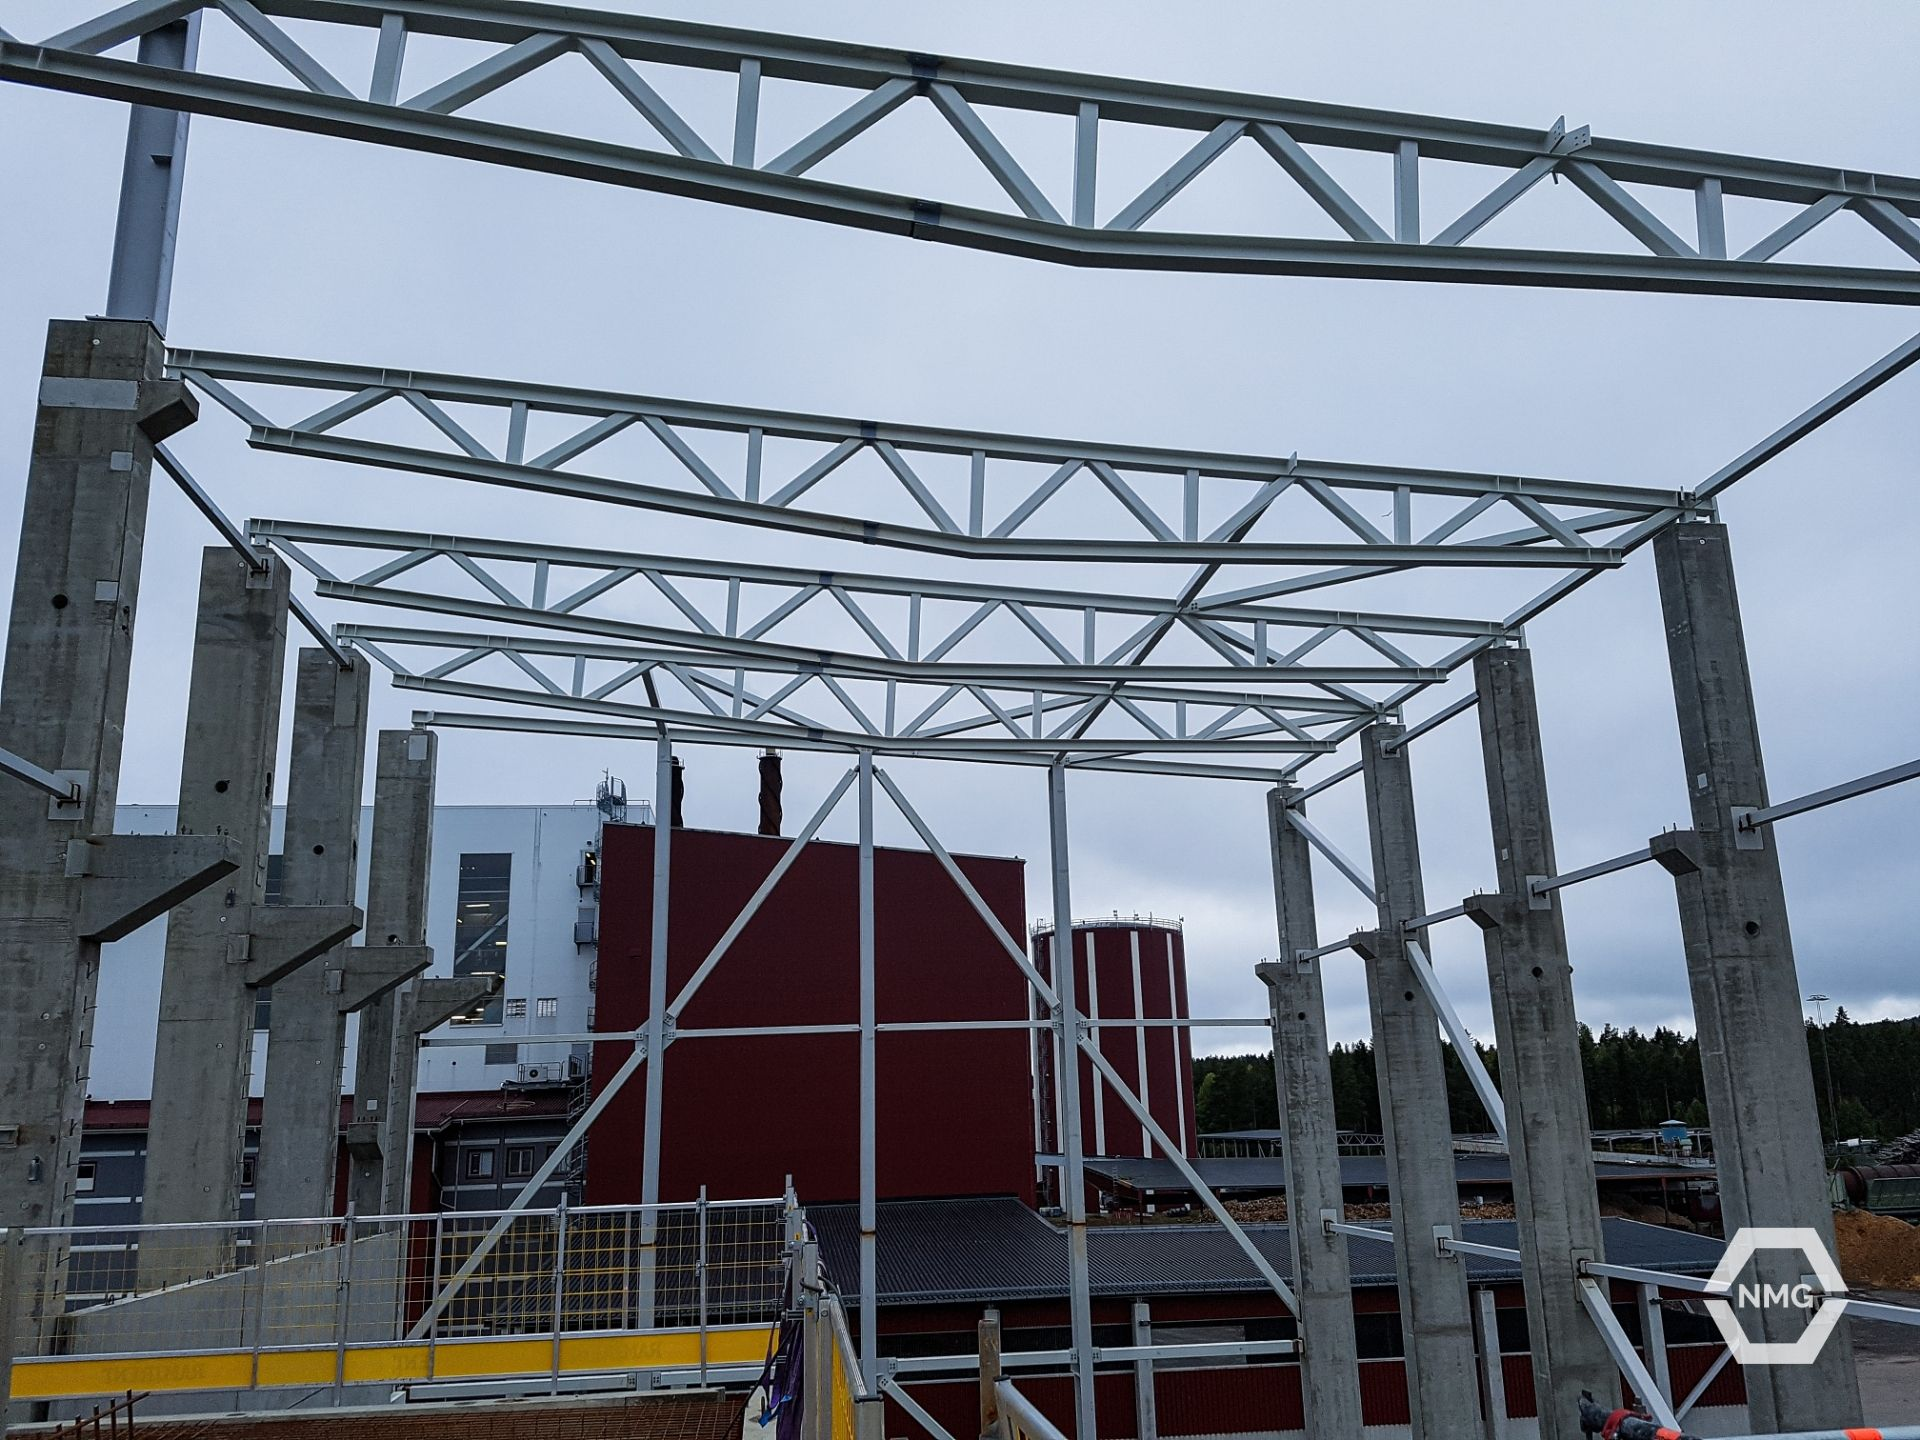 Nordic Montage services steel construction metal assembly